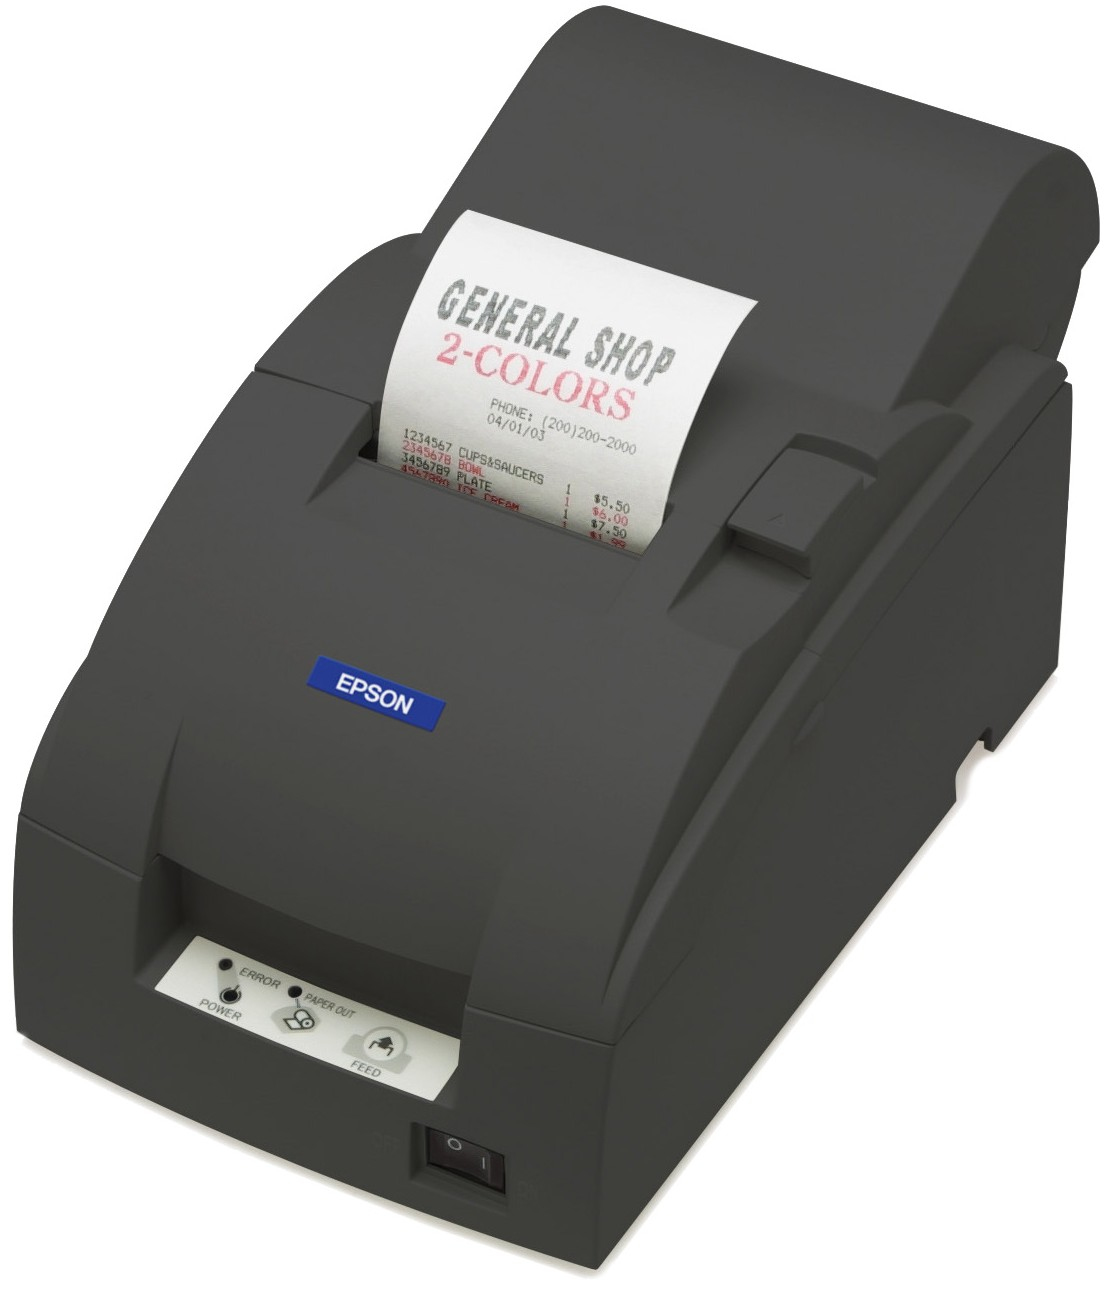 Epson TM-U220A Direkt Wärme POS printer